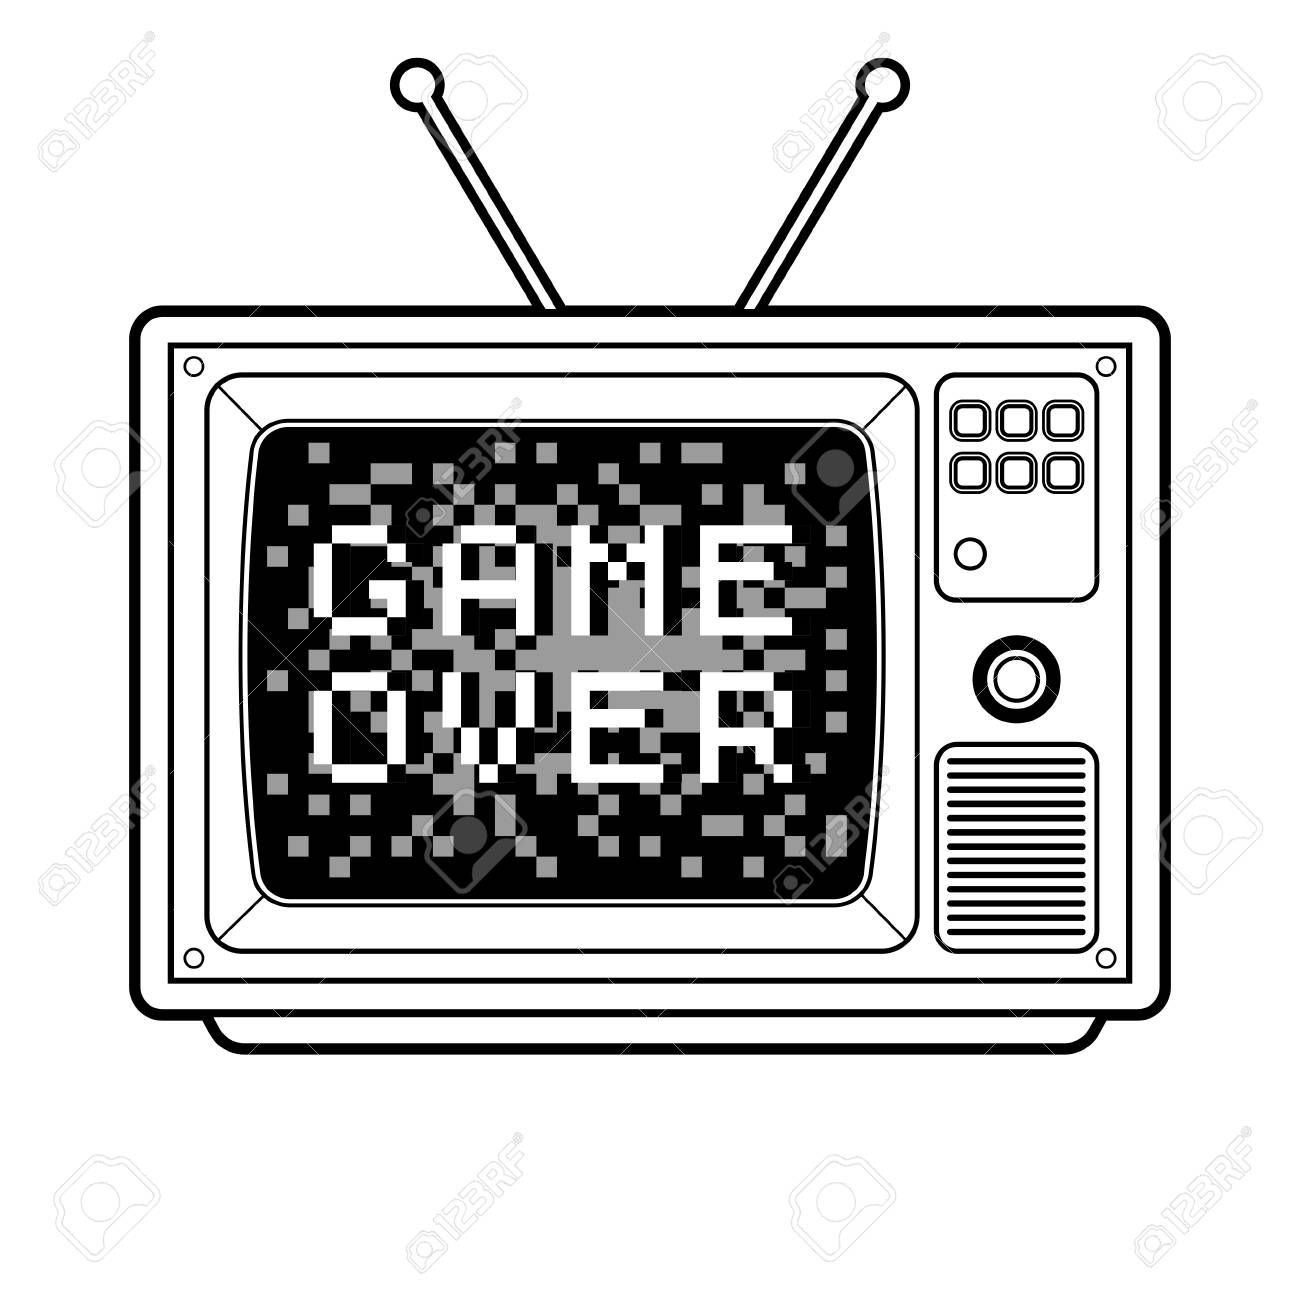 Game Over On Tv Coloring Book Vector Illustration Sponsored Coloring Tv Game Illustration Vec Crayola Coloring Pages Coloring Books Coloring Pages